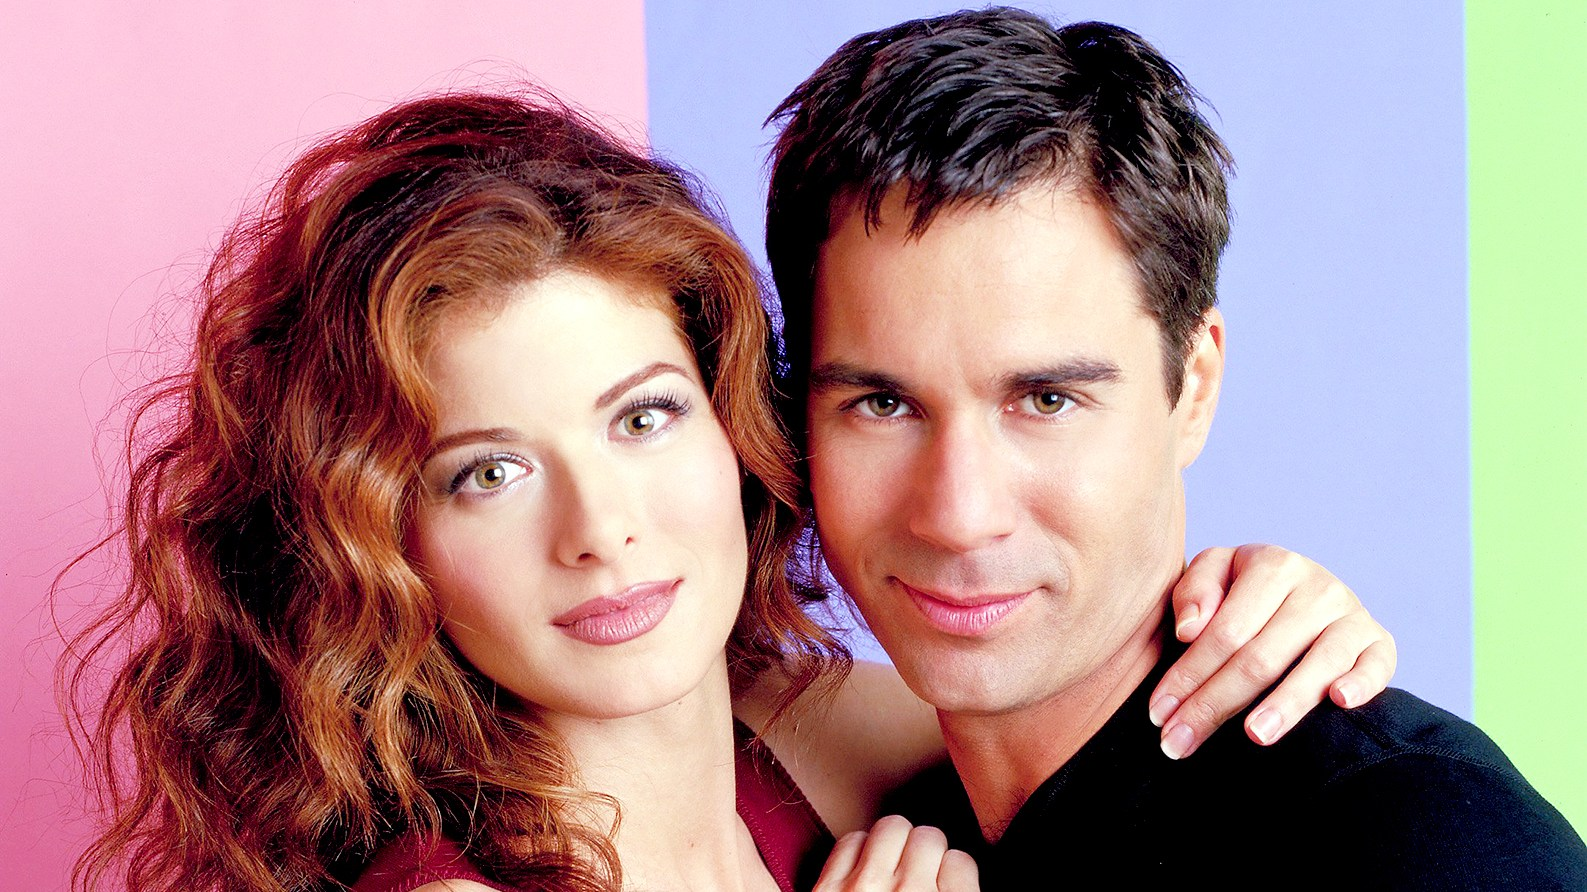 Debra Messing as Grace Adler and Eric McCormack as Will Truman on Will & Grace